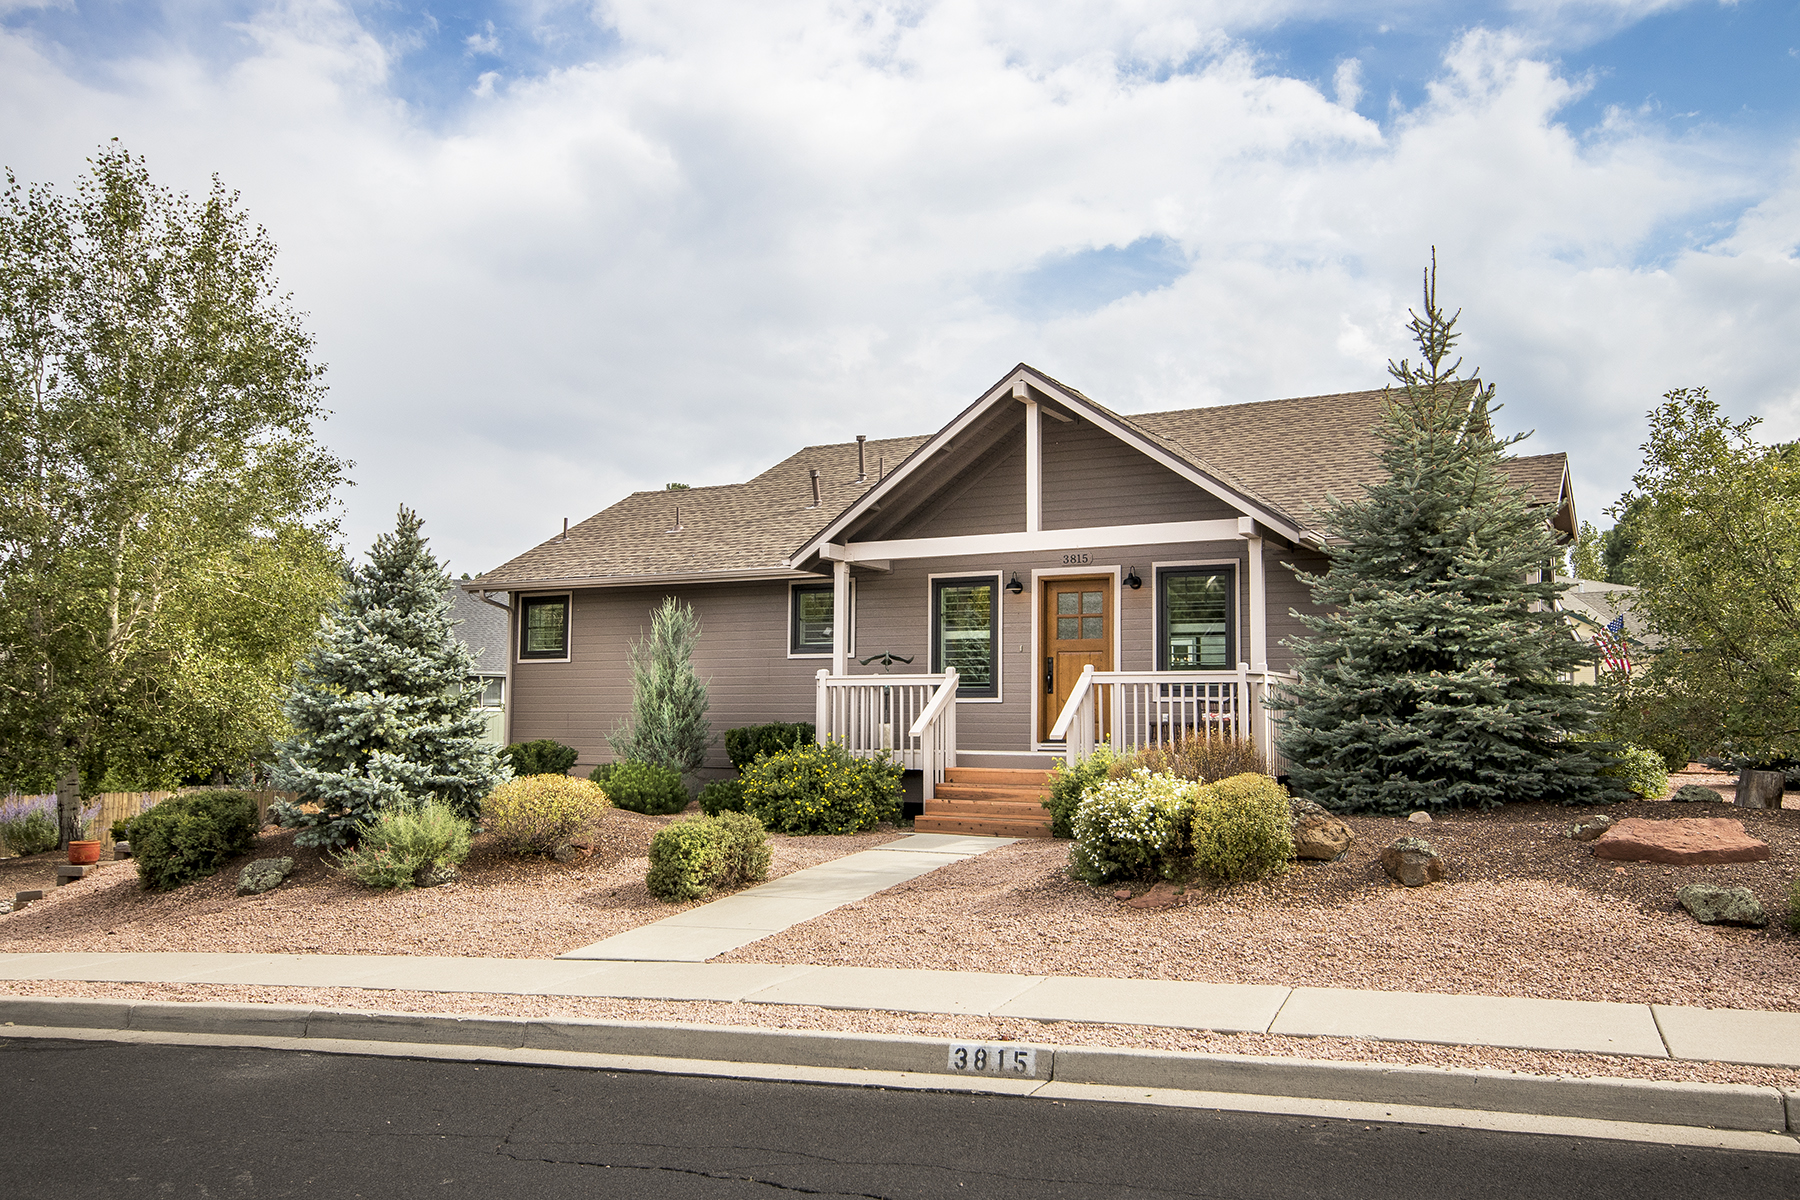 3815 S America West Trl – SOLD!